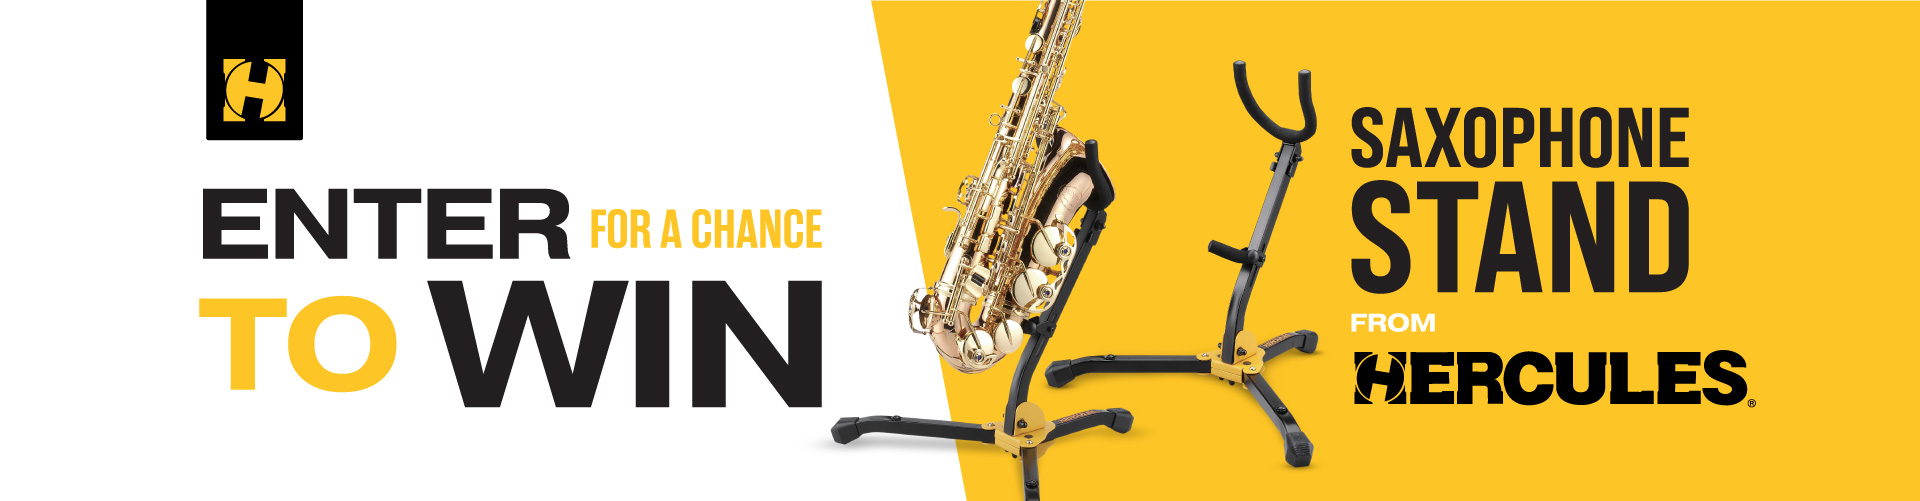 Sax Stand Sweepstakes